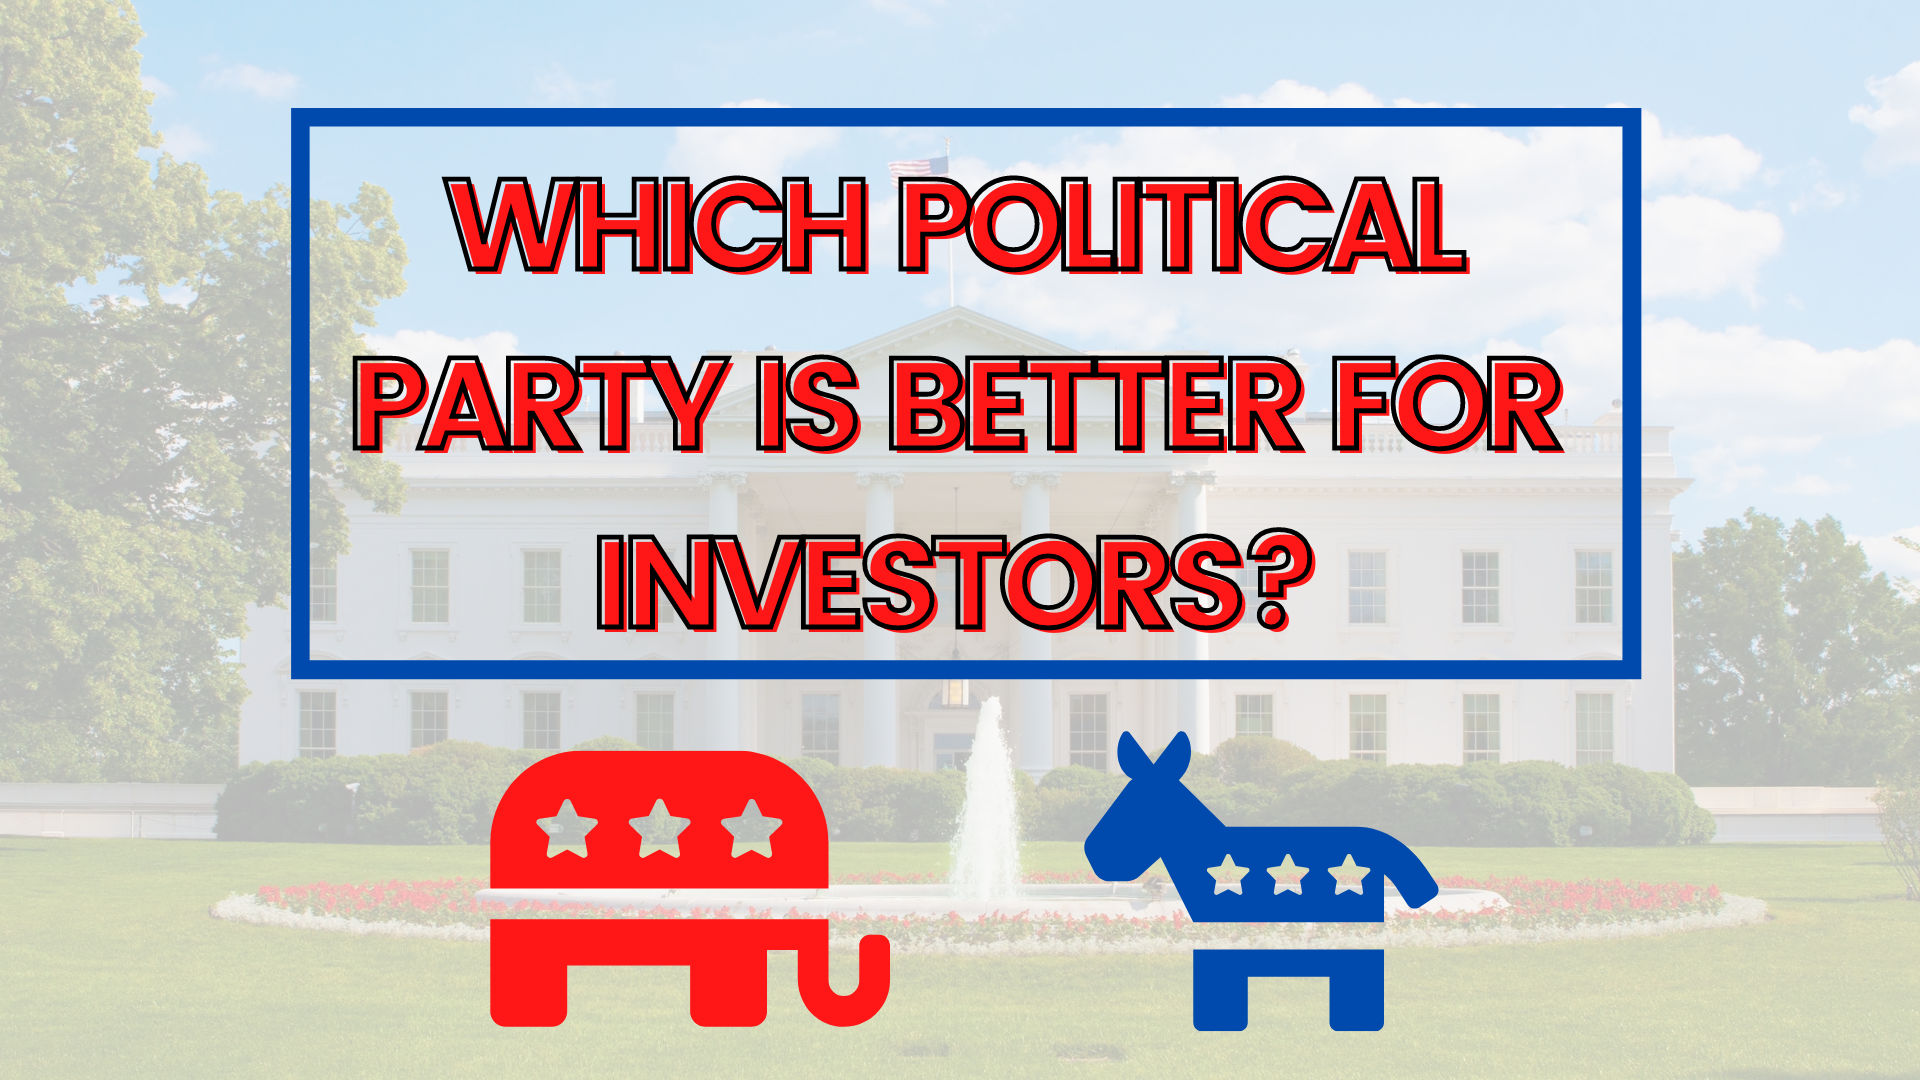 which political party is better for investors